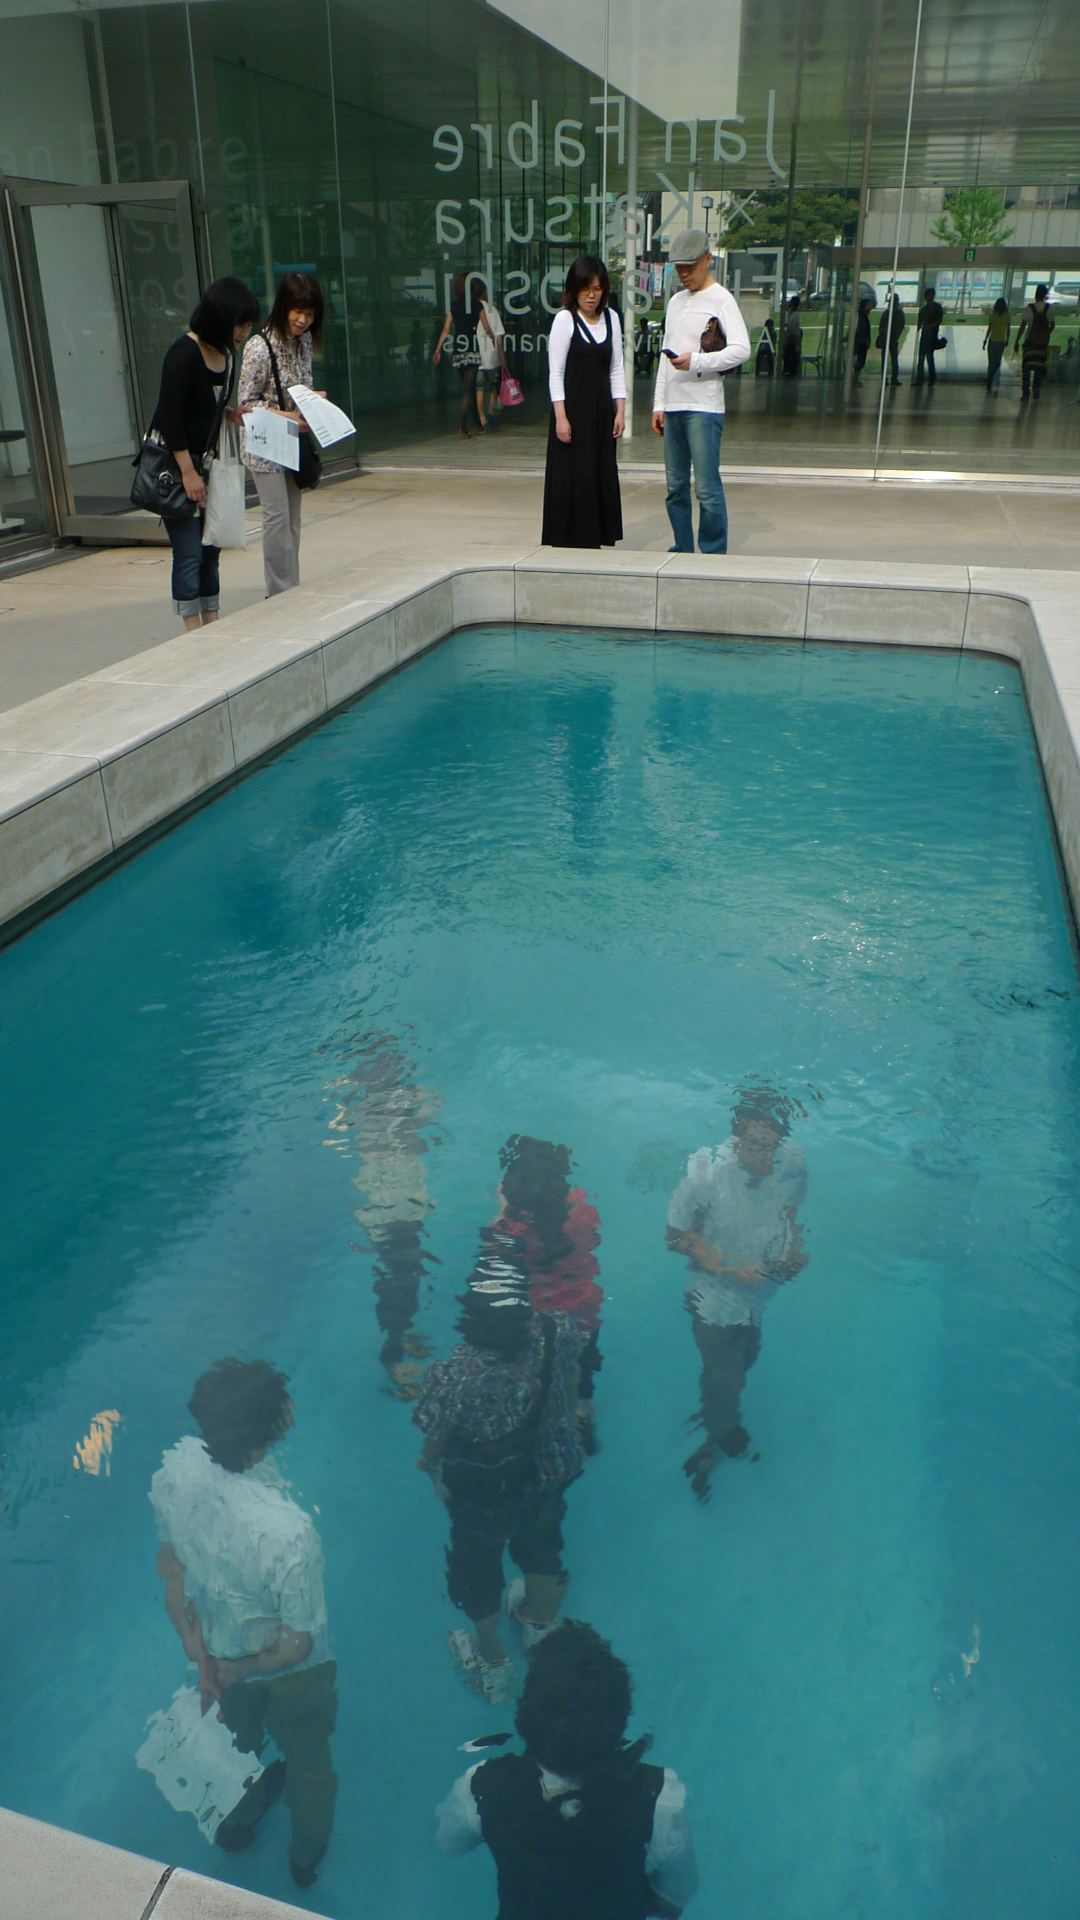 Fake Swimming Pool by Leandro Erlich, 2004,21st Century Art Museum, Japan